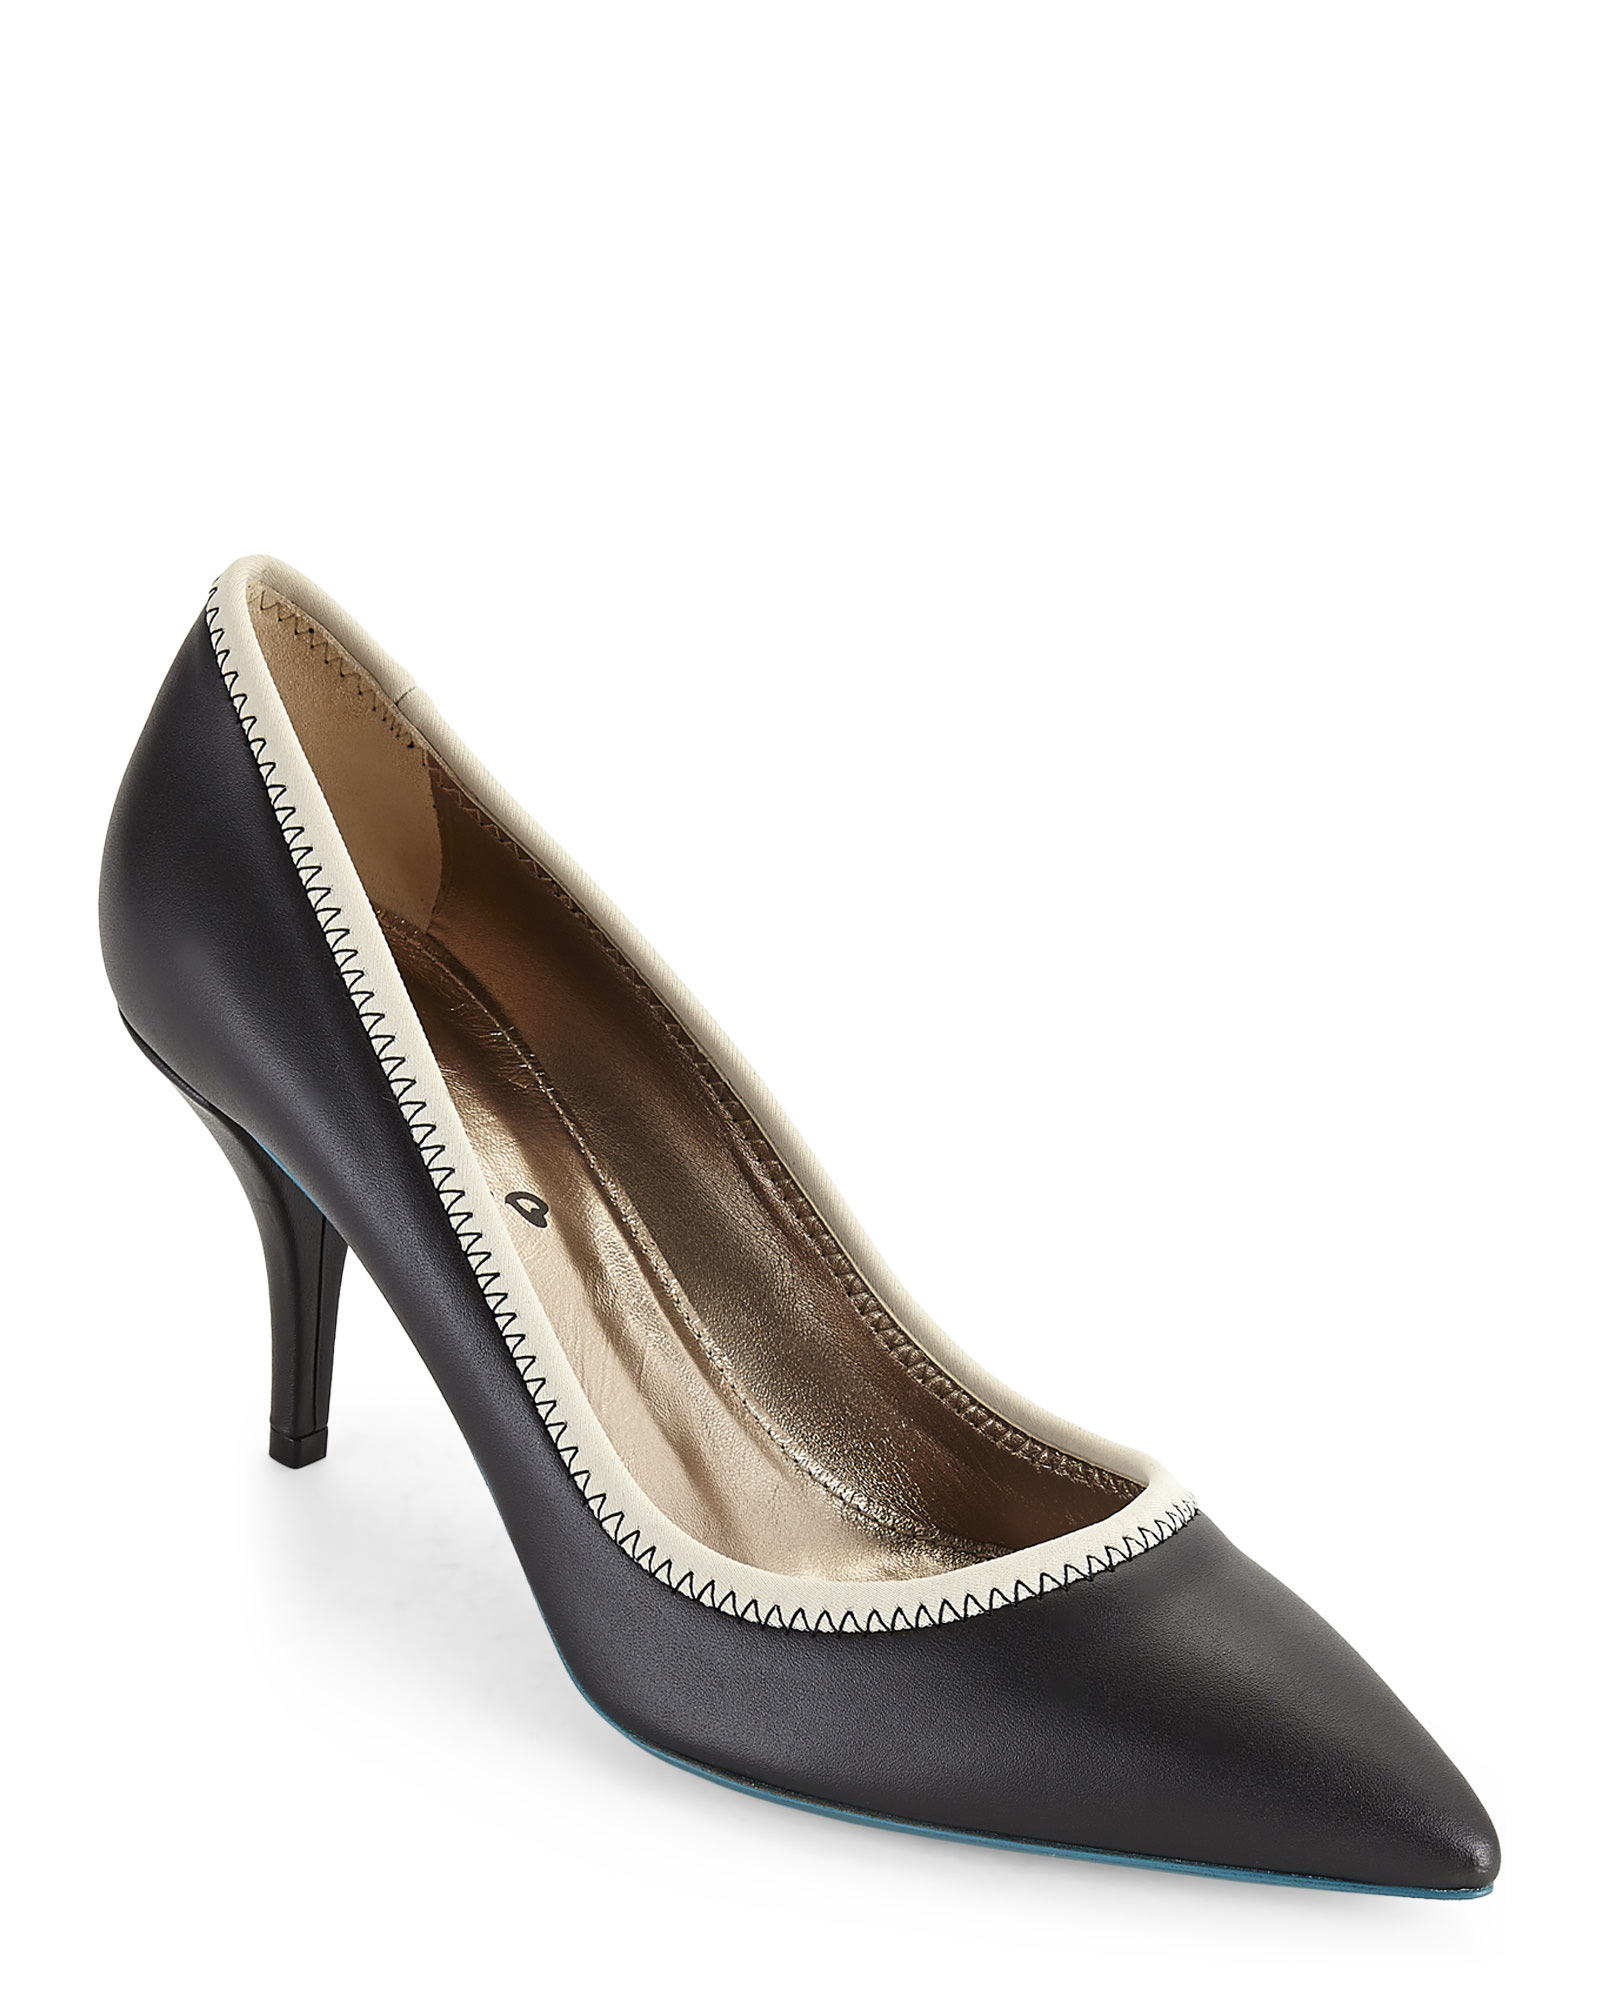 Lyst Lanvin Black Amp Off White Contrast Sole Pumps In Black